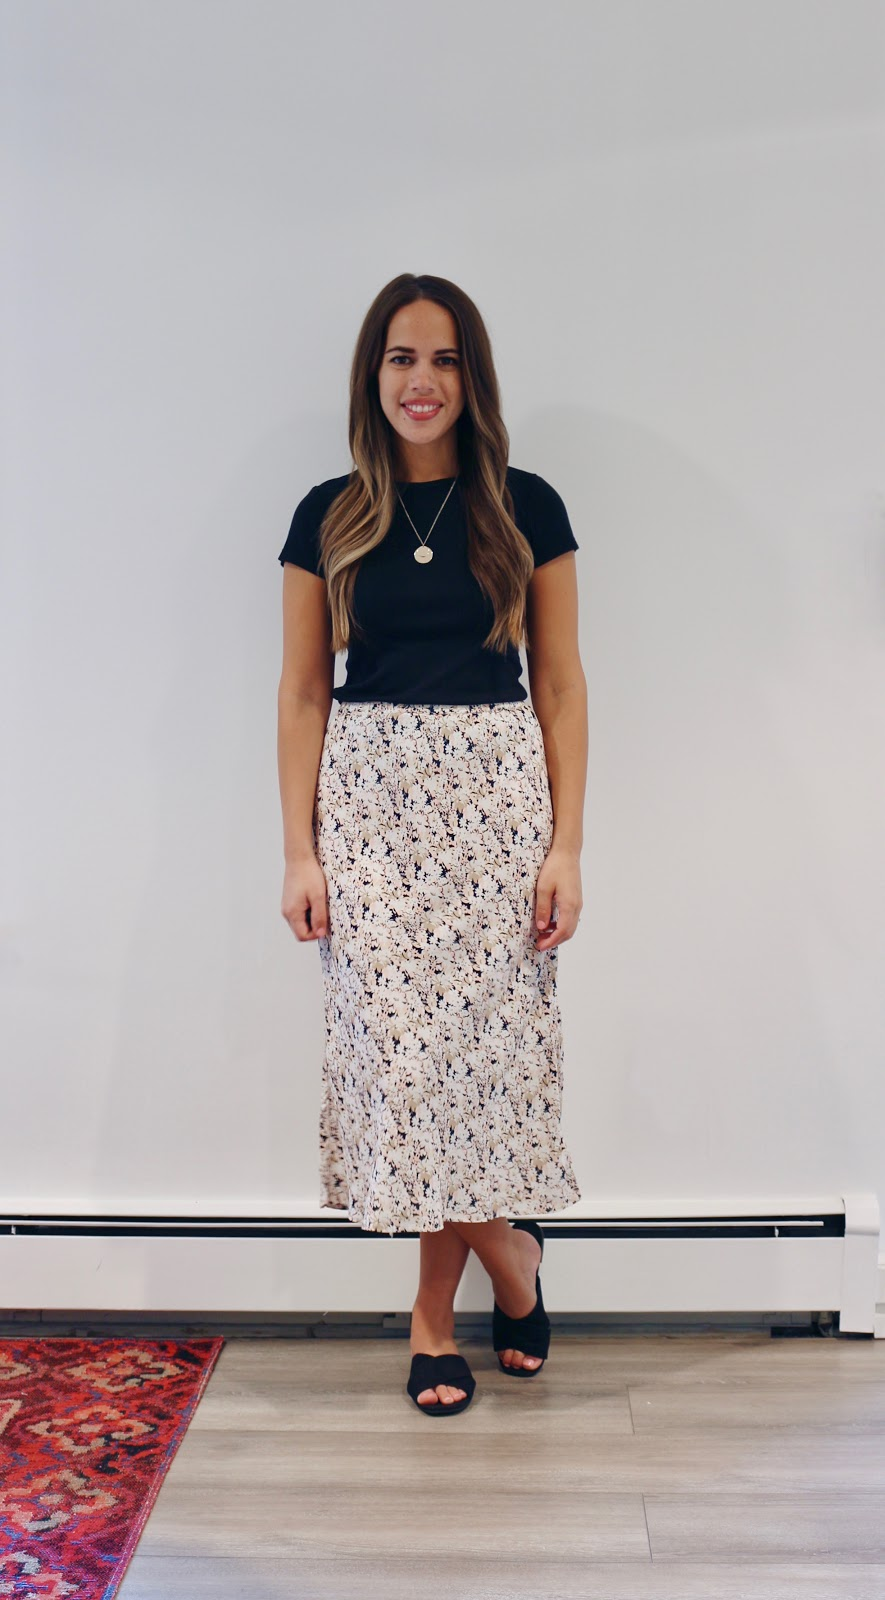 Jules in Flats -  Floral Midi Skirt (Business Casual Summer Workwear on a Budget)